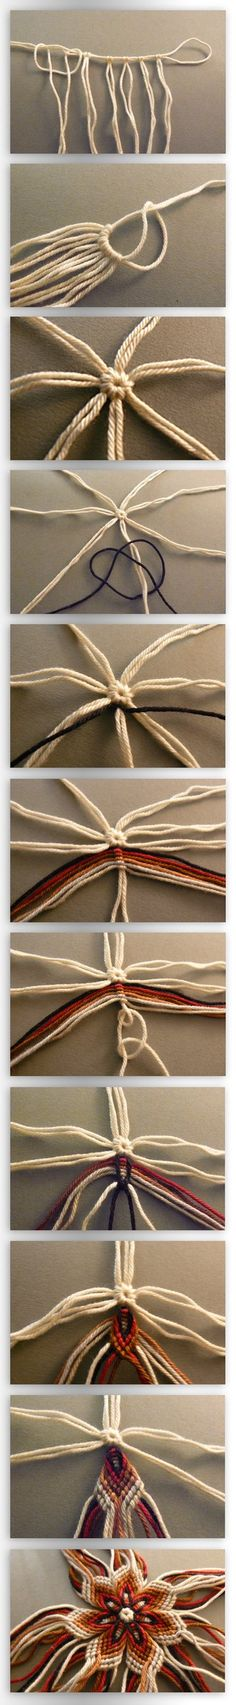 Pouch Tutorial Part I (Bottom) by ~nimuae